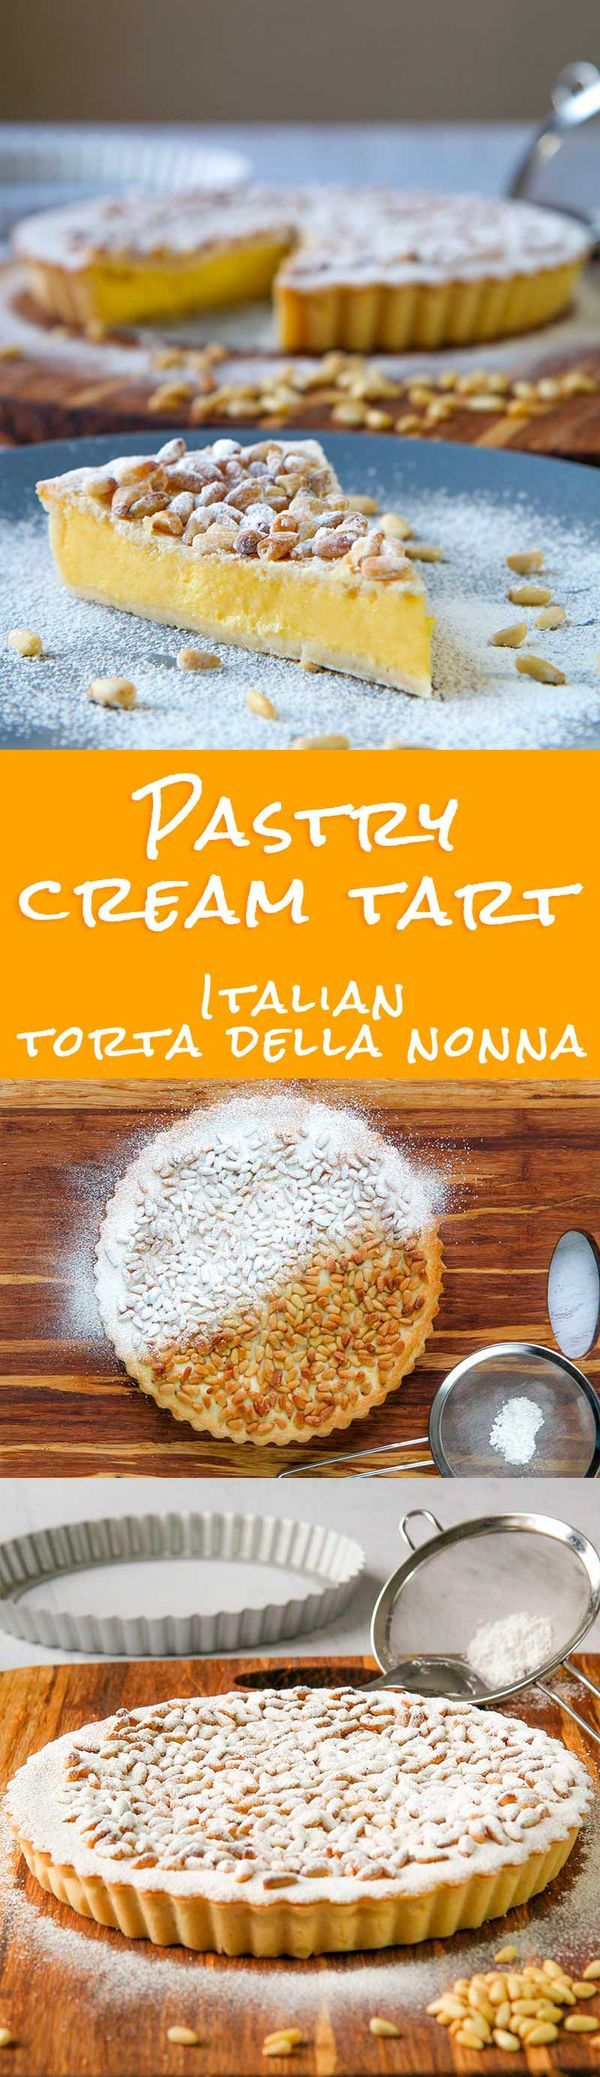 """ITALIAN PASTRY CREAM TART (Torta della Nonna) - Pastry cream tart (called in Italy """"torta della nonna"""" = grandmother's cake ) is a classic Italian dessert. A crispy and flavorful pastry dough shell hide a creamy egg and milk custard. A rain of pine nuts and powdered sugar complete this traditional dessert, a sweet remembrance for any Italian kid! - desserts recipe vegetarian custard party feast"""